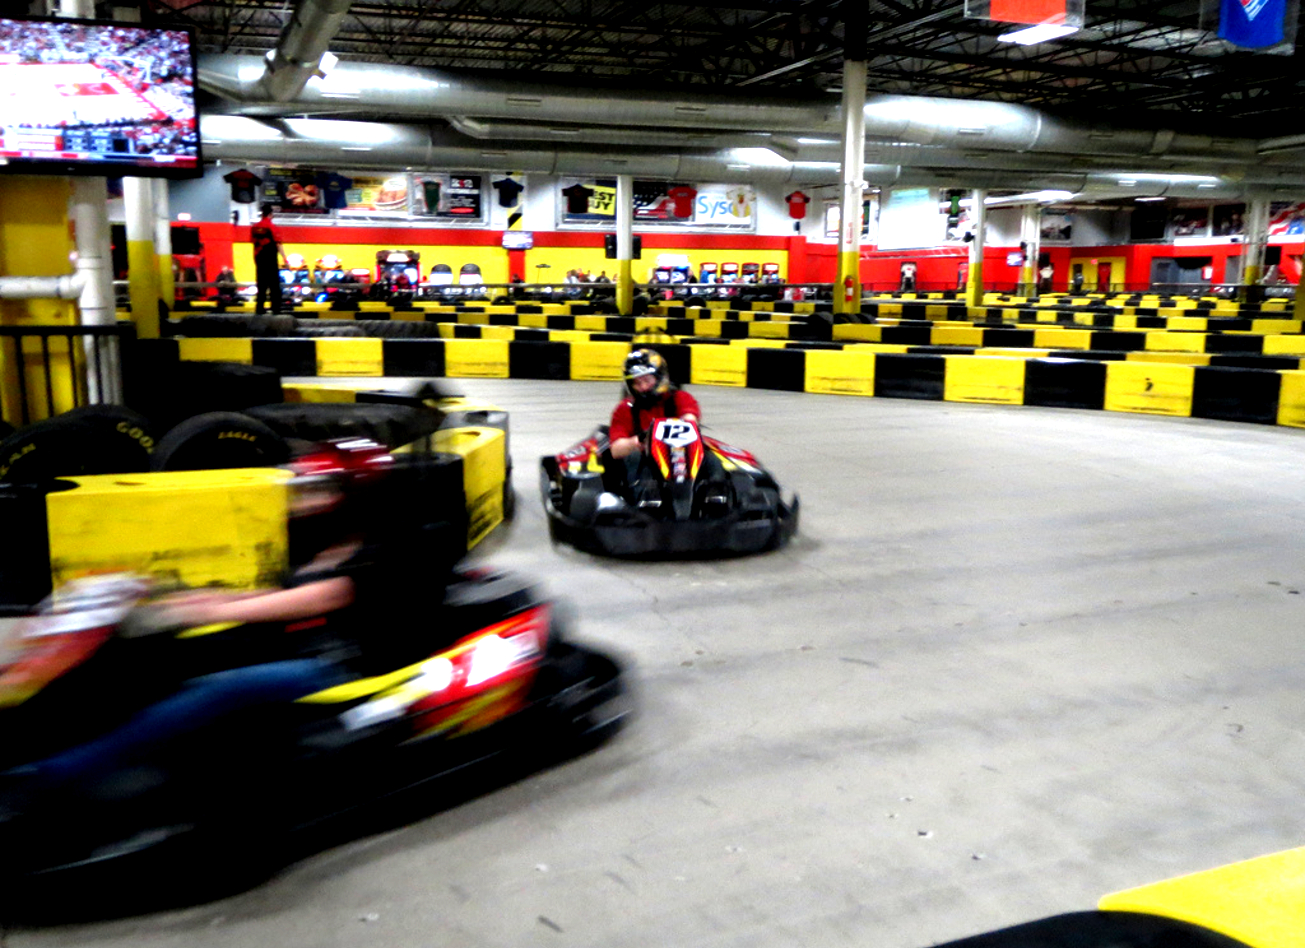 sessions de karting à bruxelles indoor interieur activites vimigo